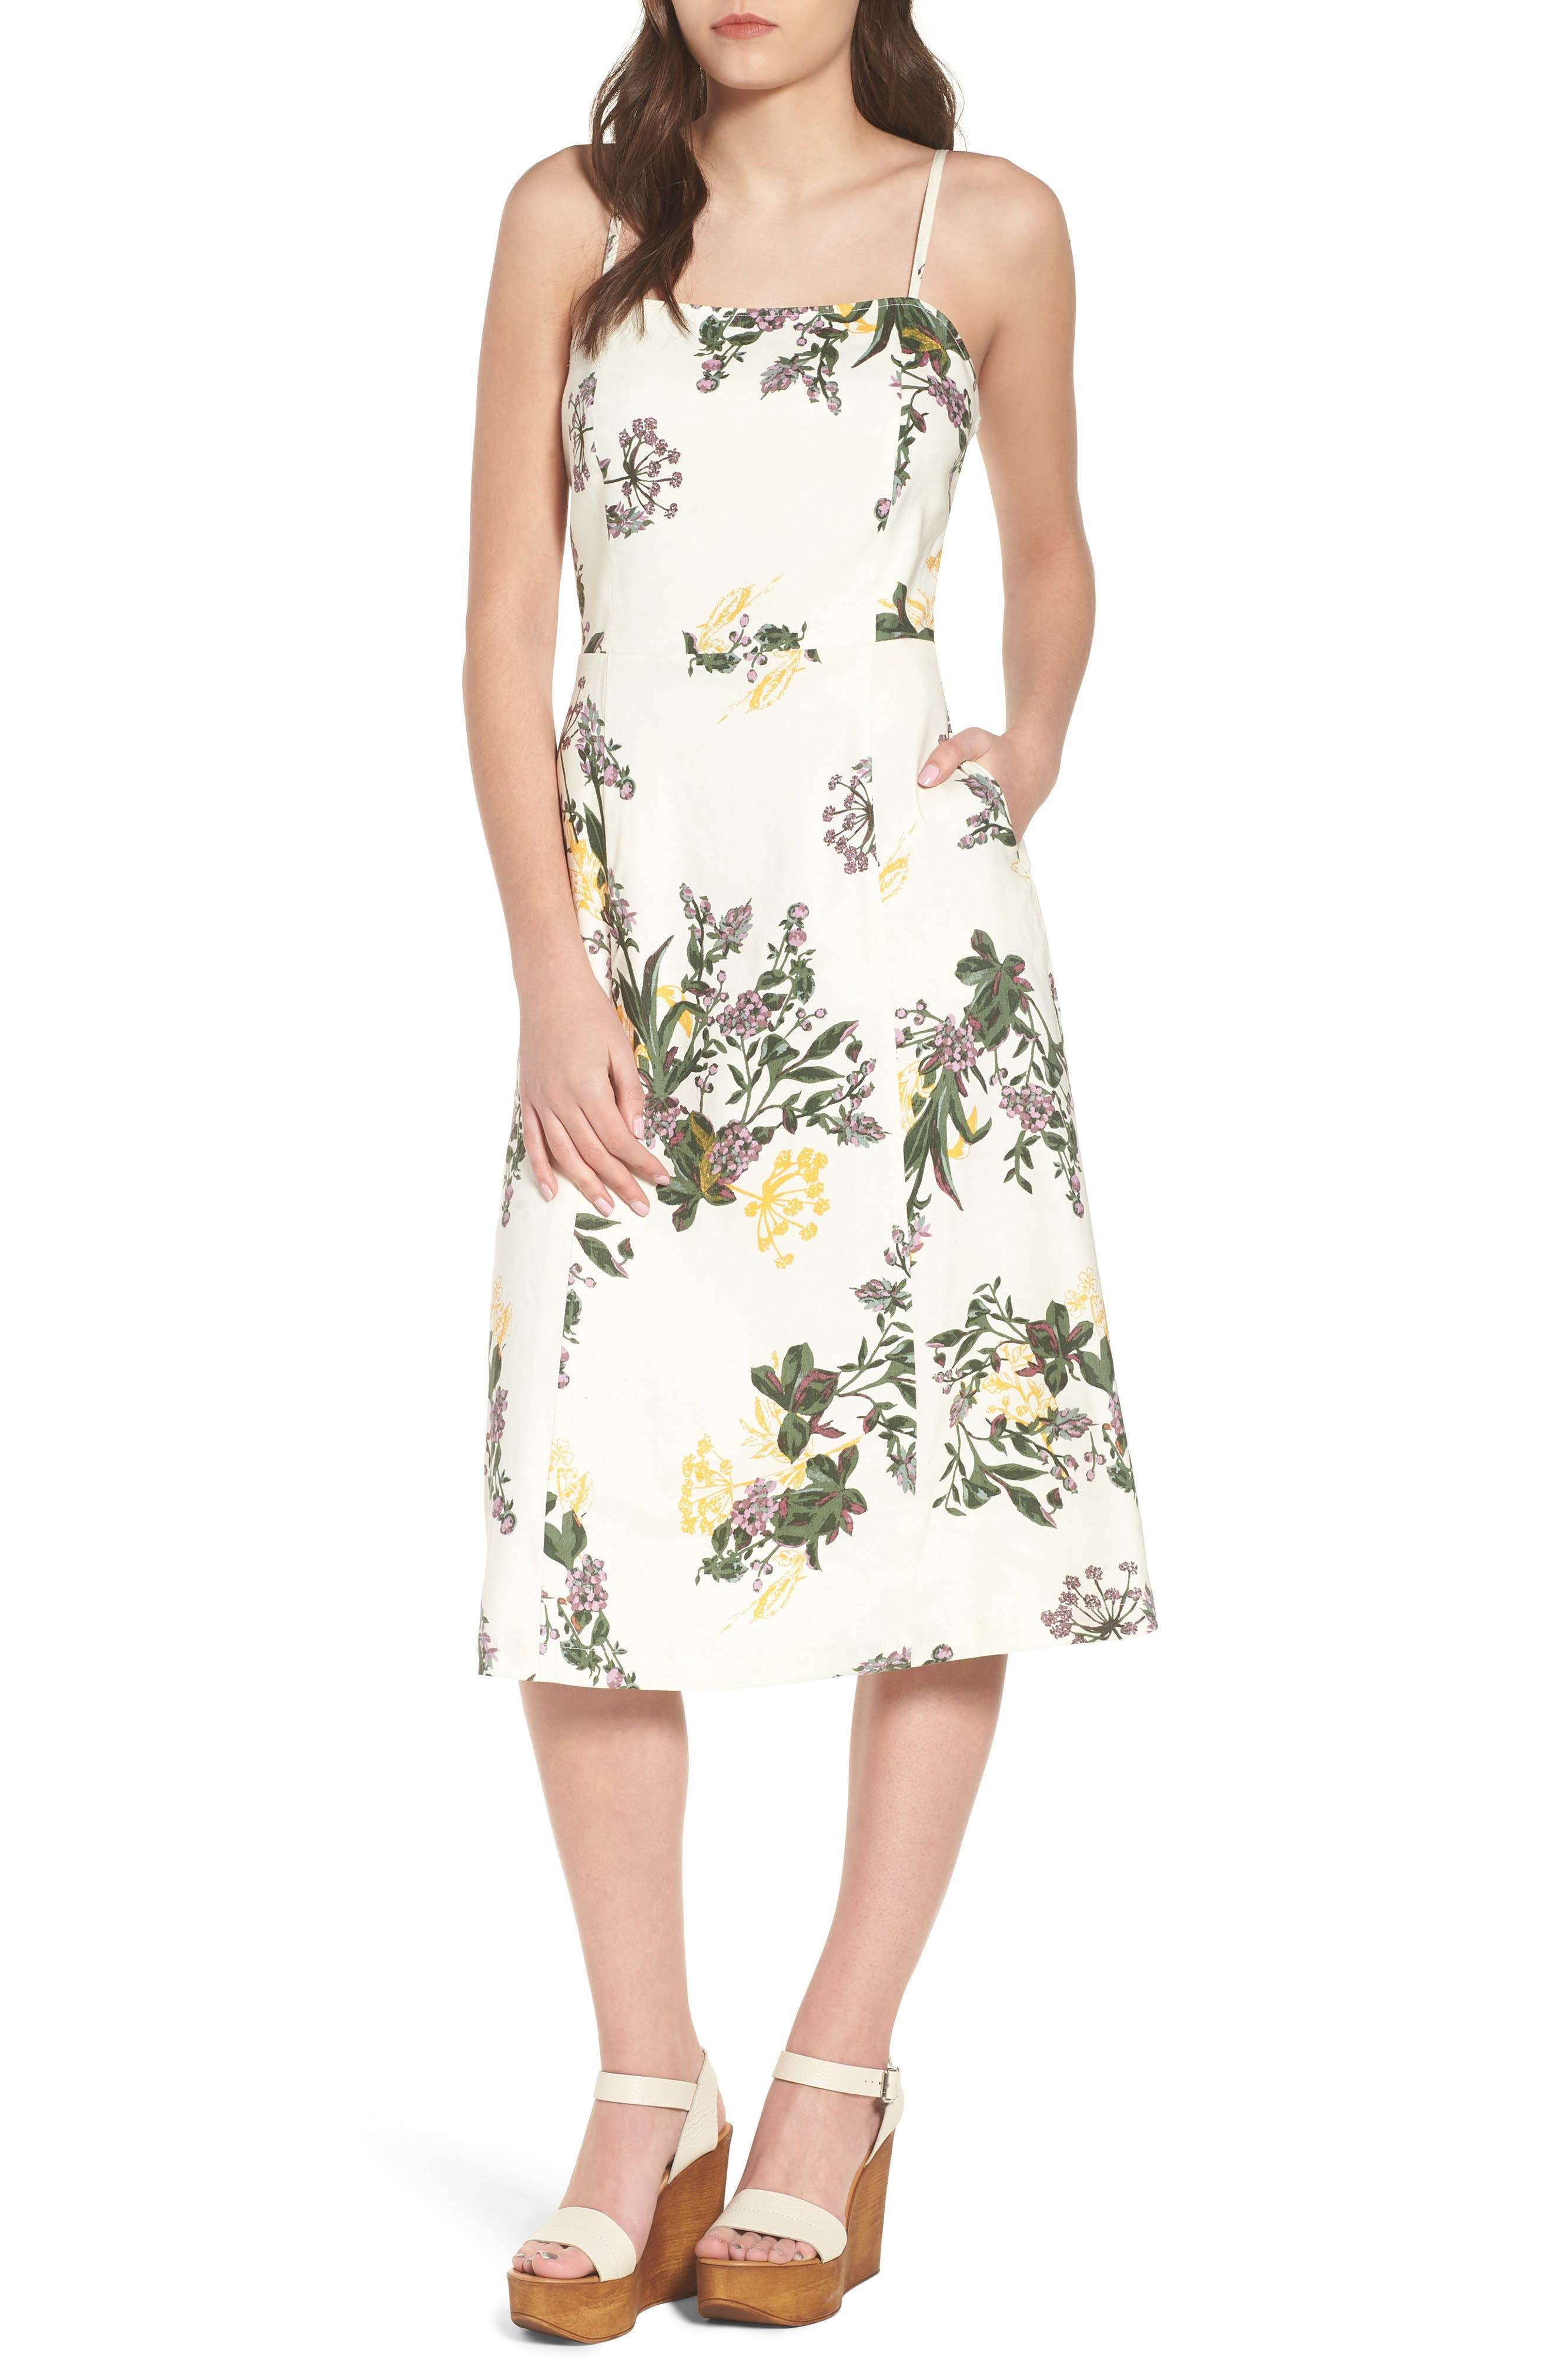 Floral Print Midi Dress,                         Main,                         color, Ivory Ghost Floral